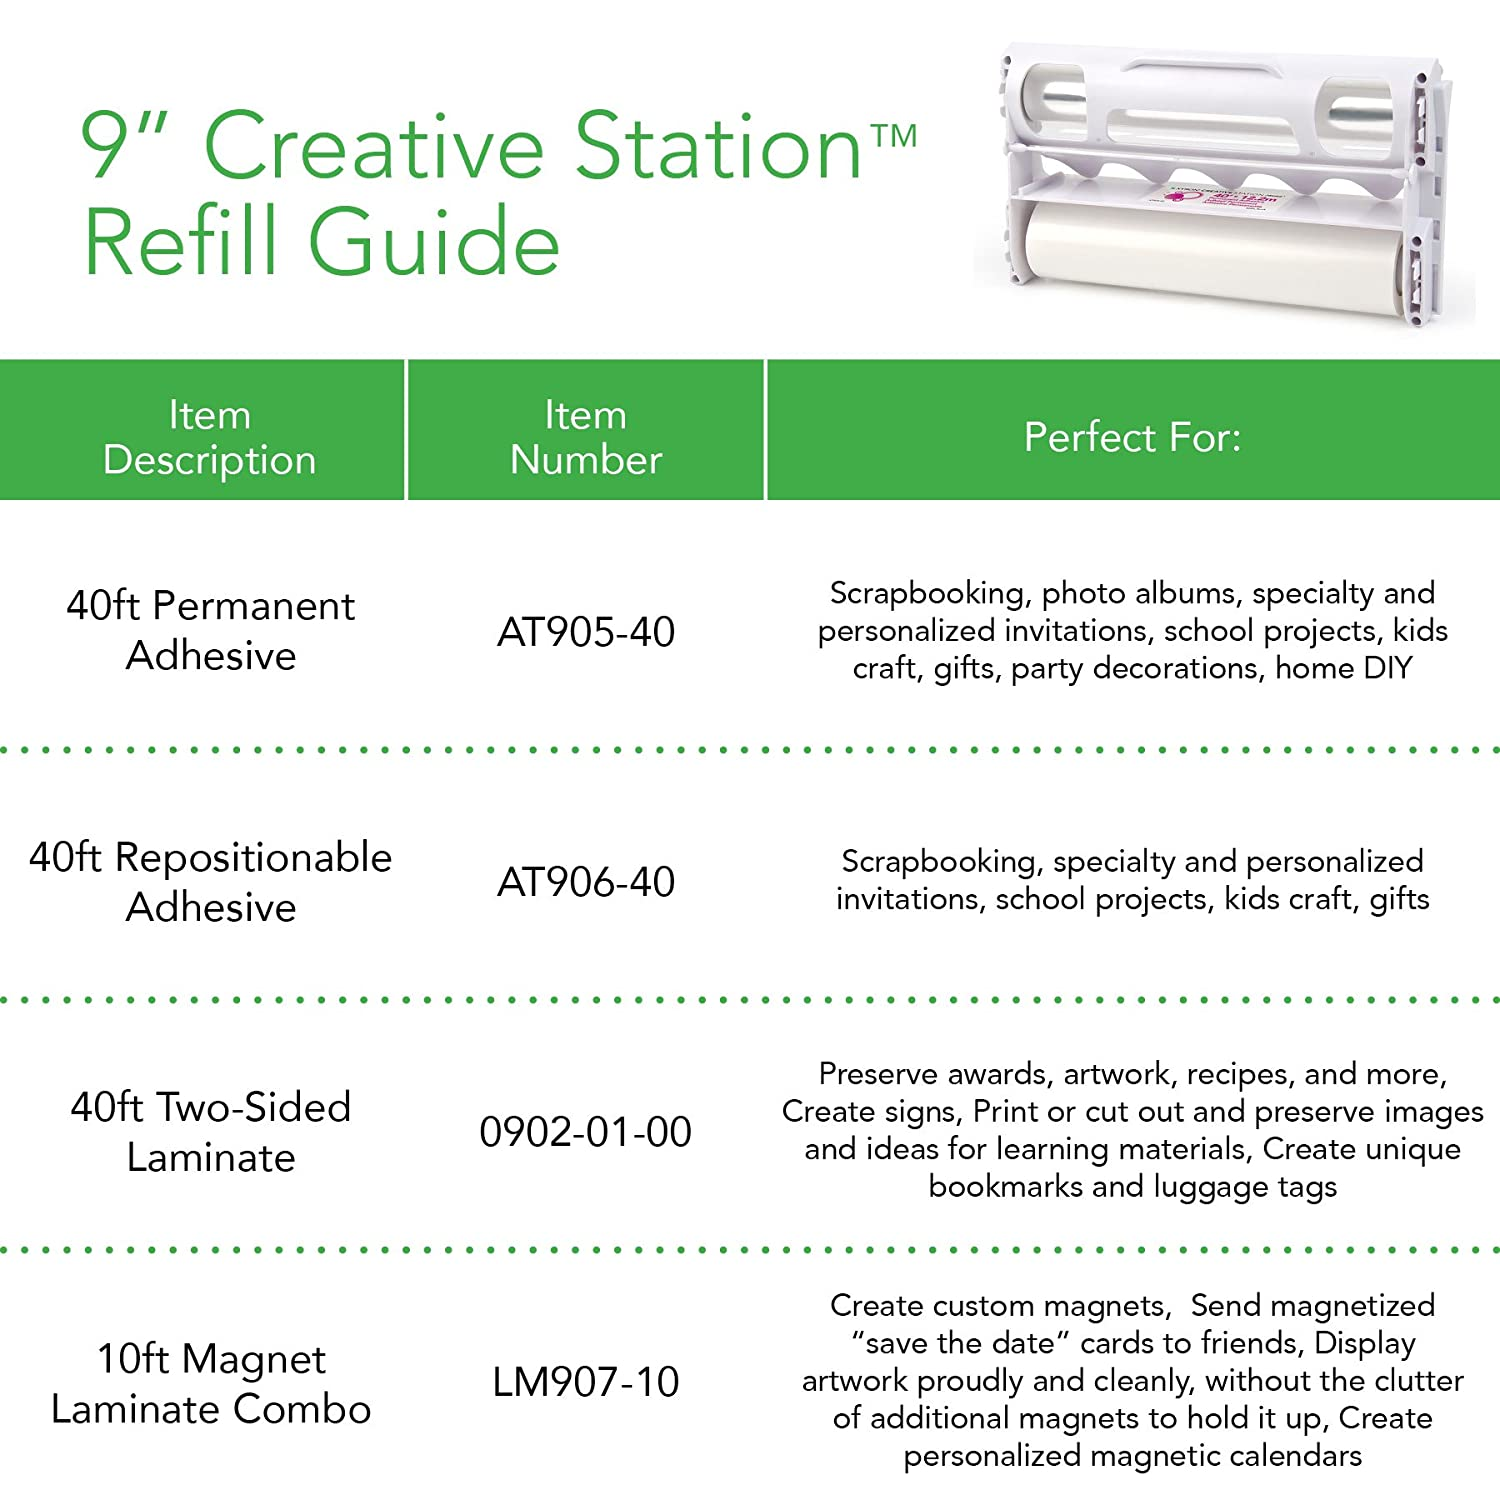 Xyron 9-inch x 40-inch Permanent 900 Adhesive Refill Cartridge, Transparent AT905-40